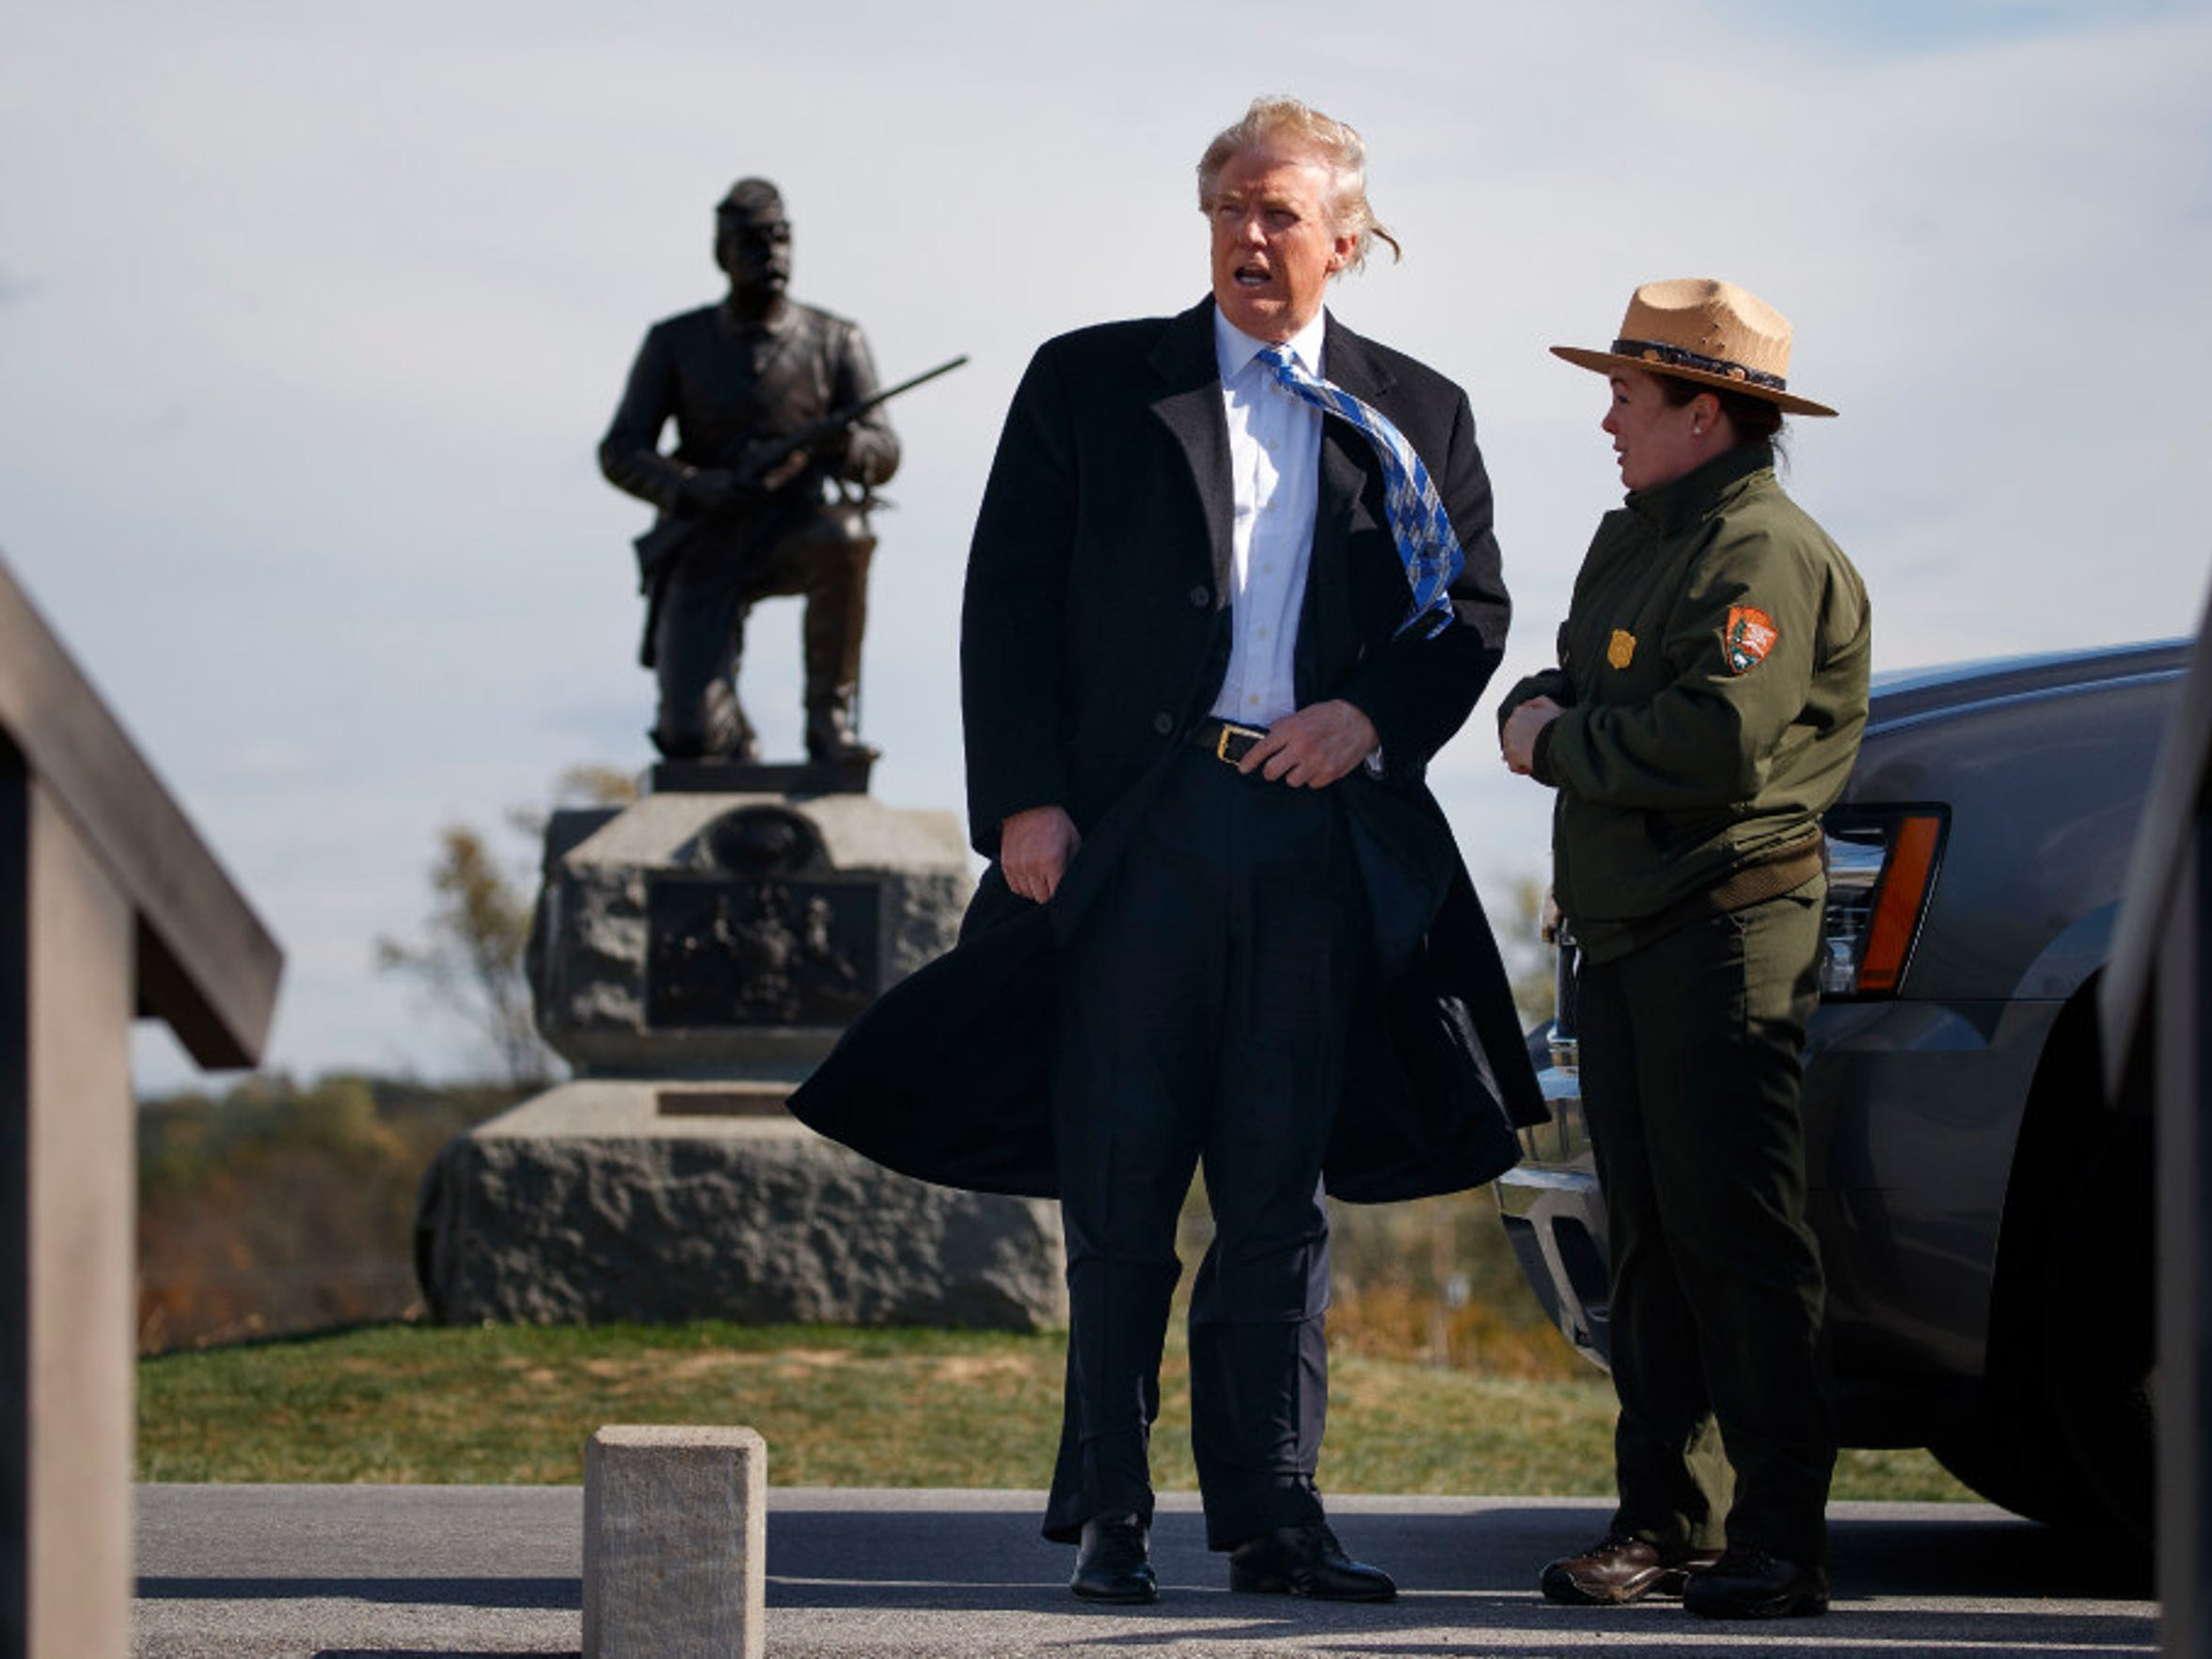 Donald Trump in Gettysburg, Pa., on Oct. 22, 2016,